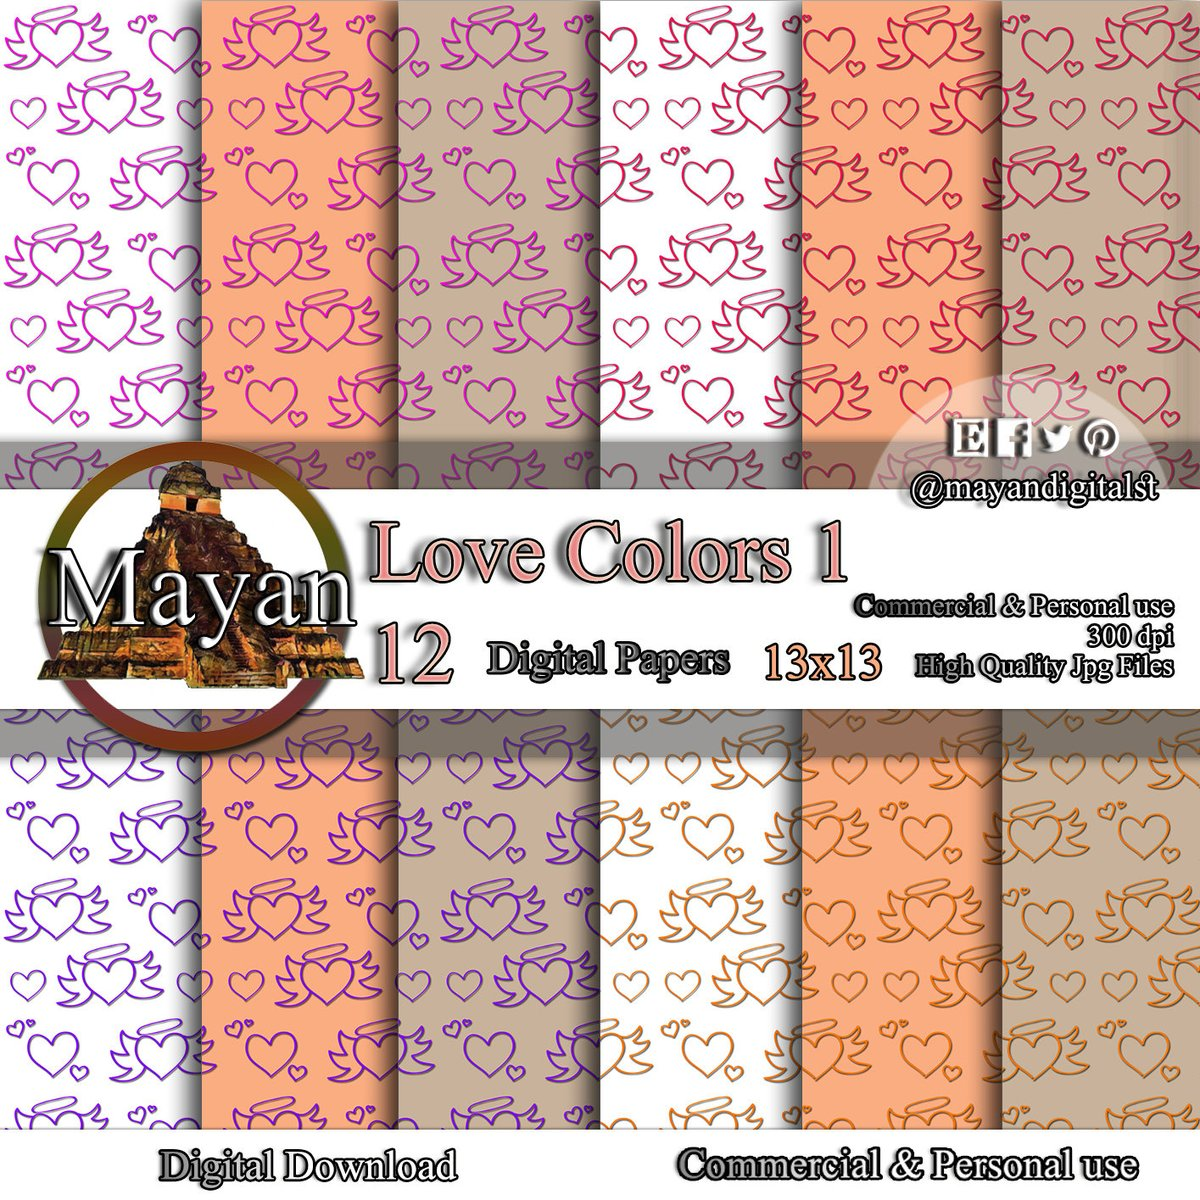 Excited to share the latest addition to my #etsy shop: Love digitized, love digital paper, heart digital print, love heart wall art, digital love, hearts digital paper, love digital background, https://t.co/Tzi3aPif48 #quinceanerasweet16 #valentinesday #lovefriendship https://t.co/Qk3RiAN7E7